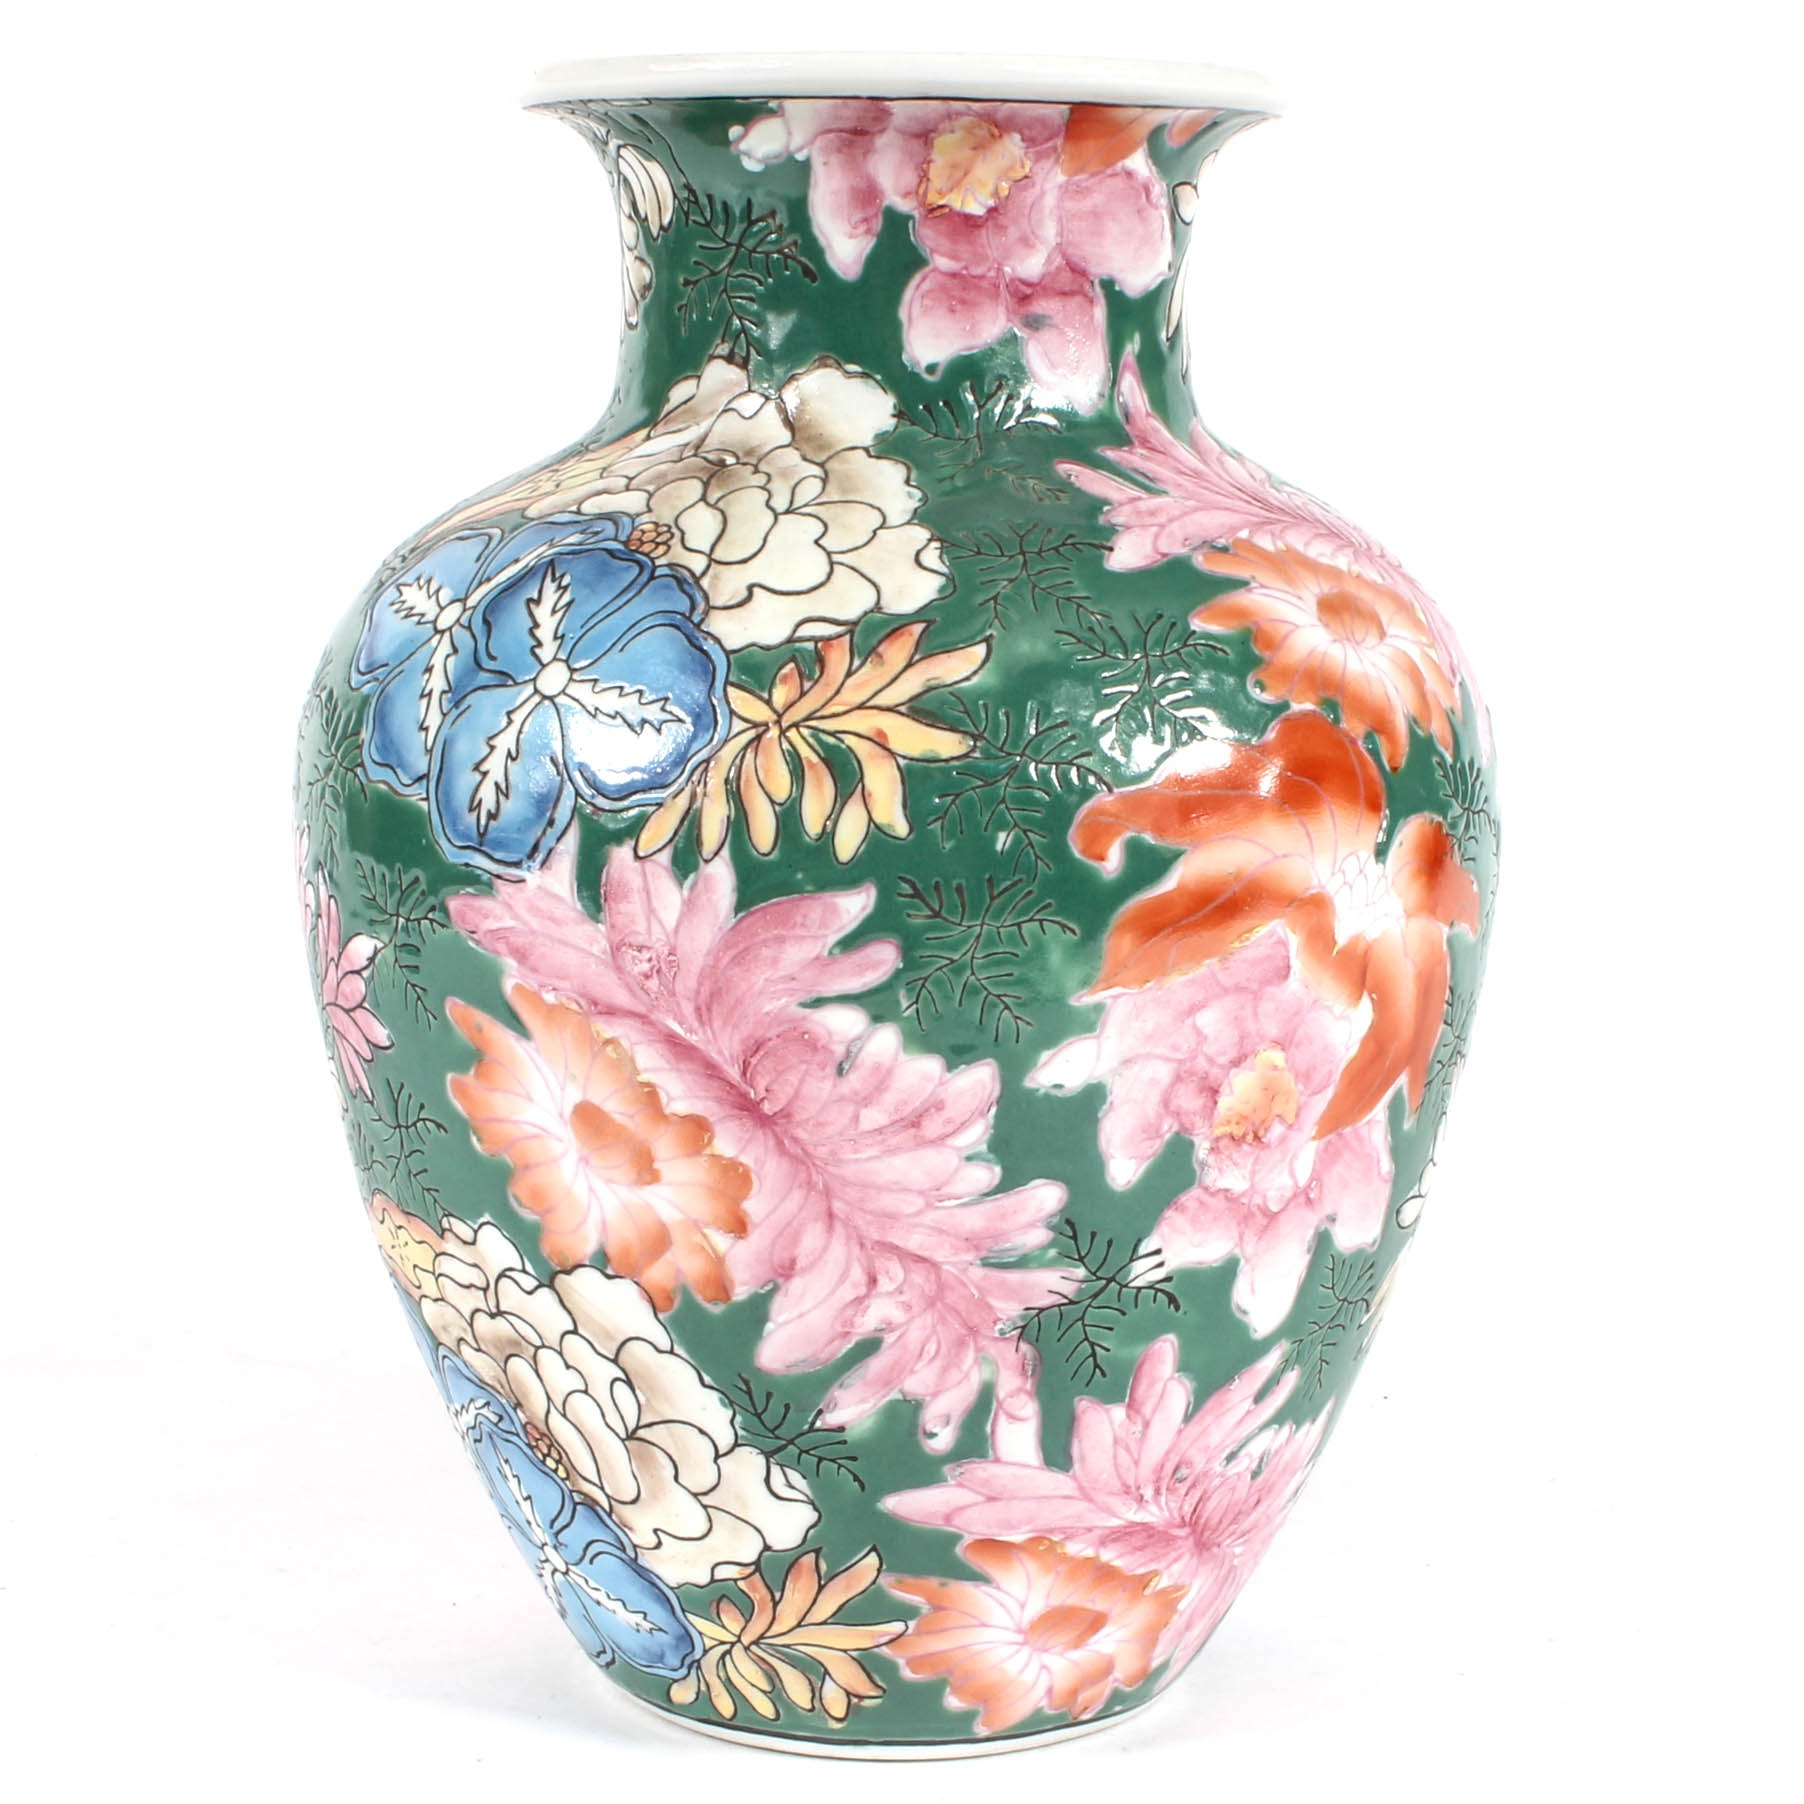 Hand-Painted Asian-Style Floral Vase